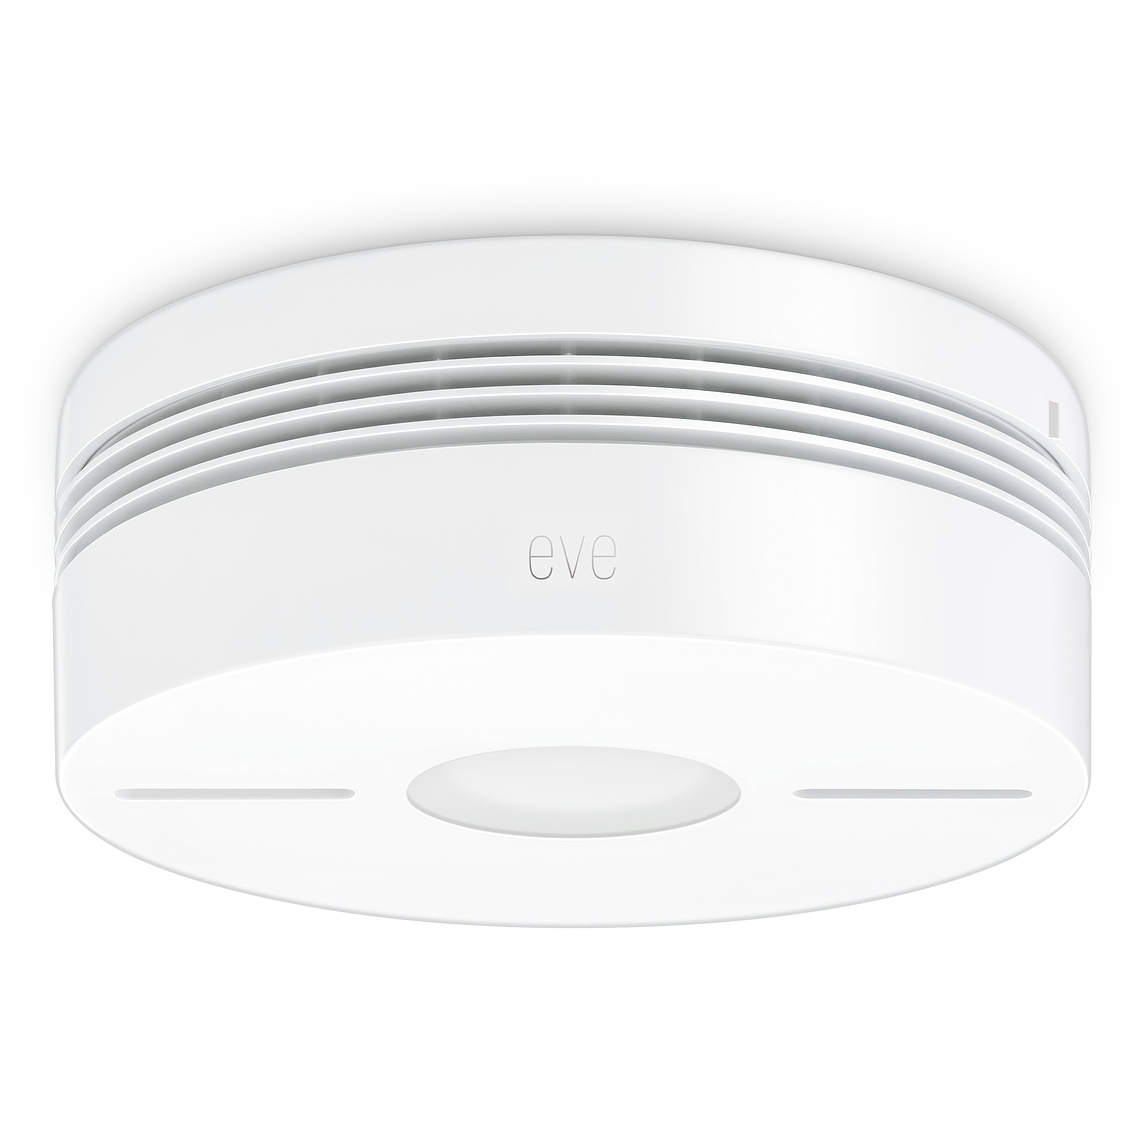 Best Smoke Alarms For Kitchens 2020